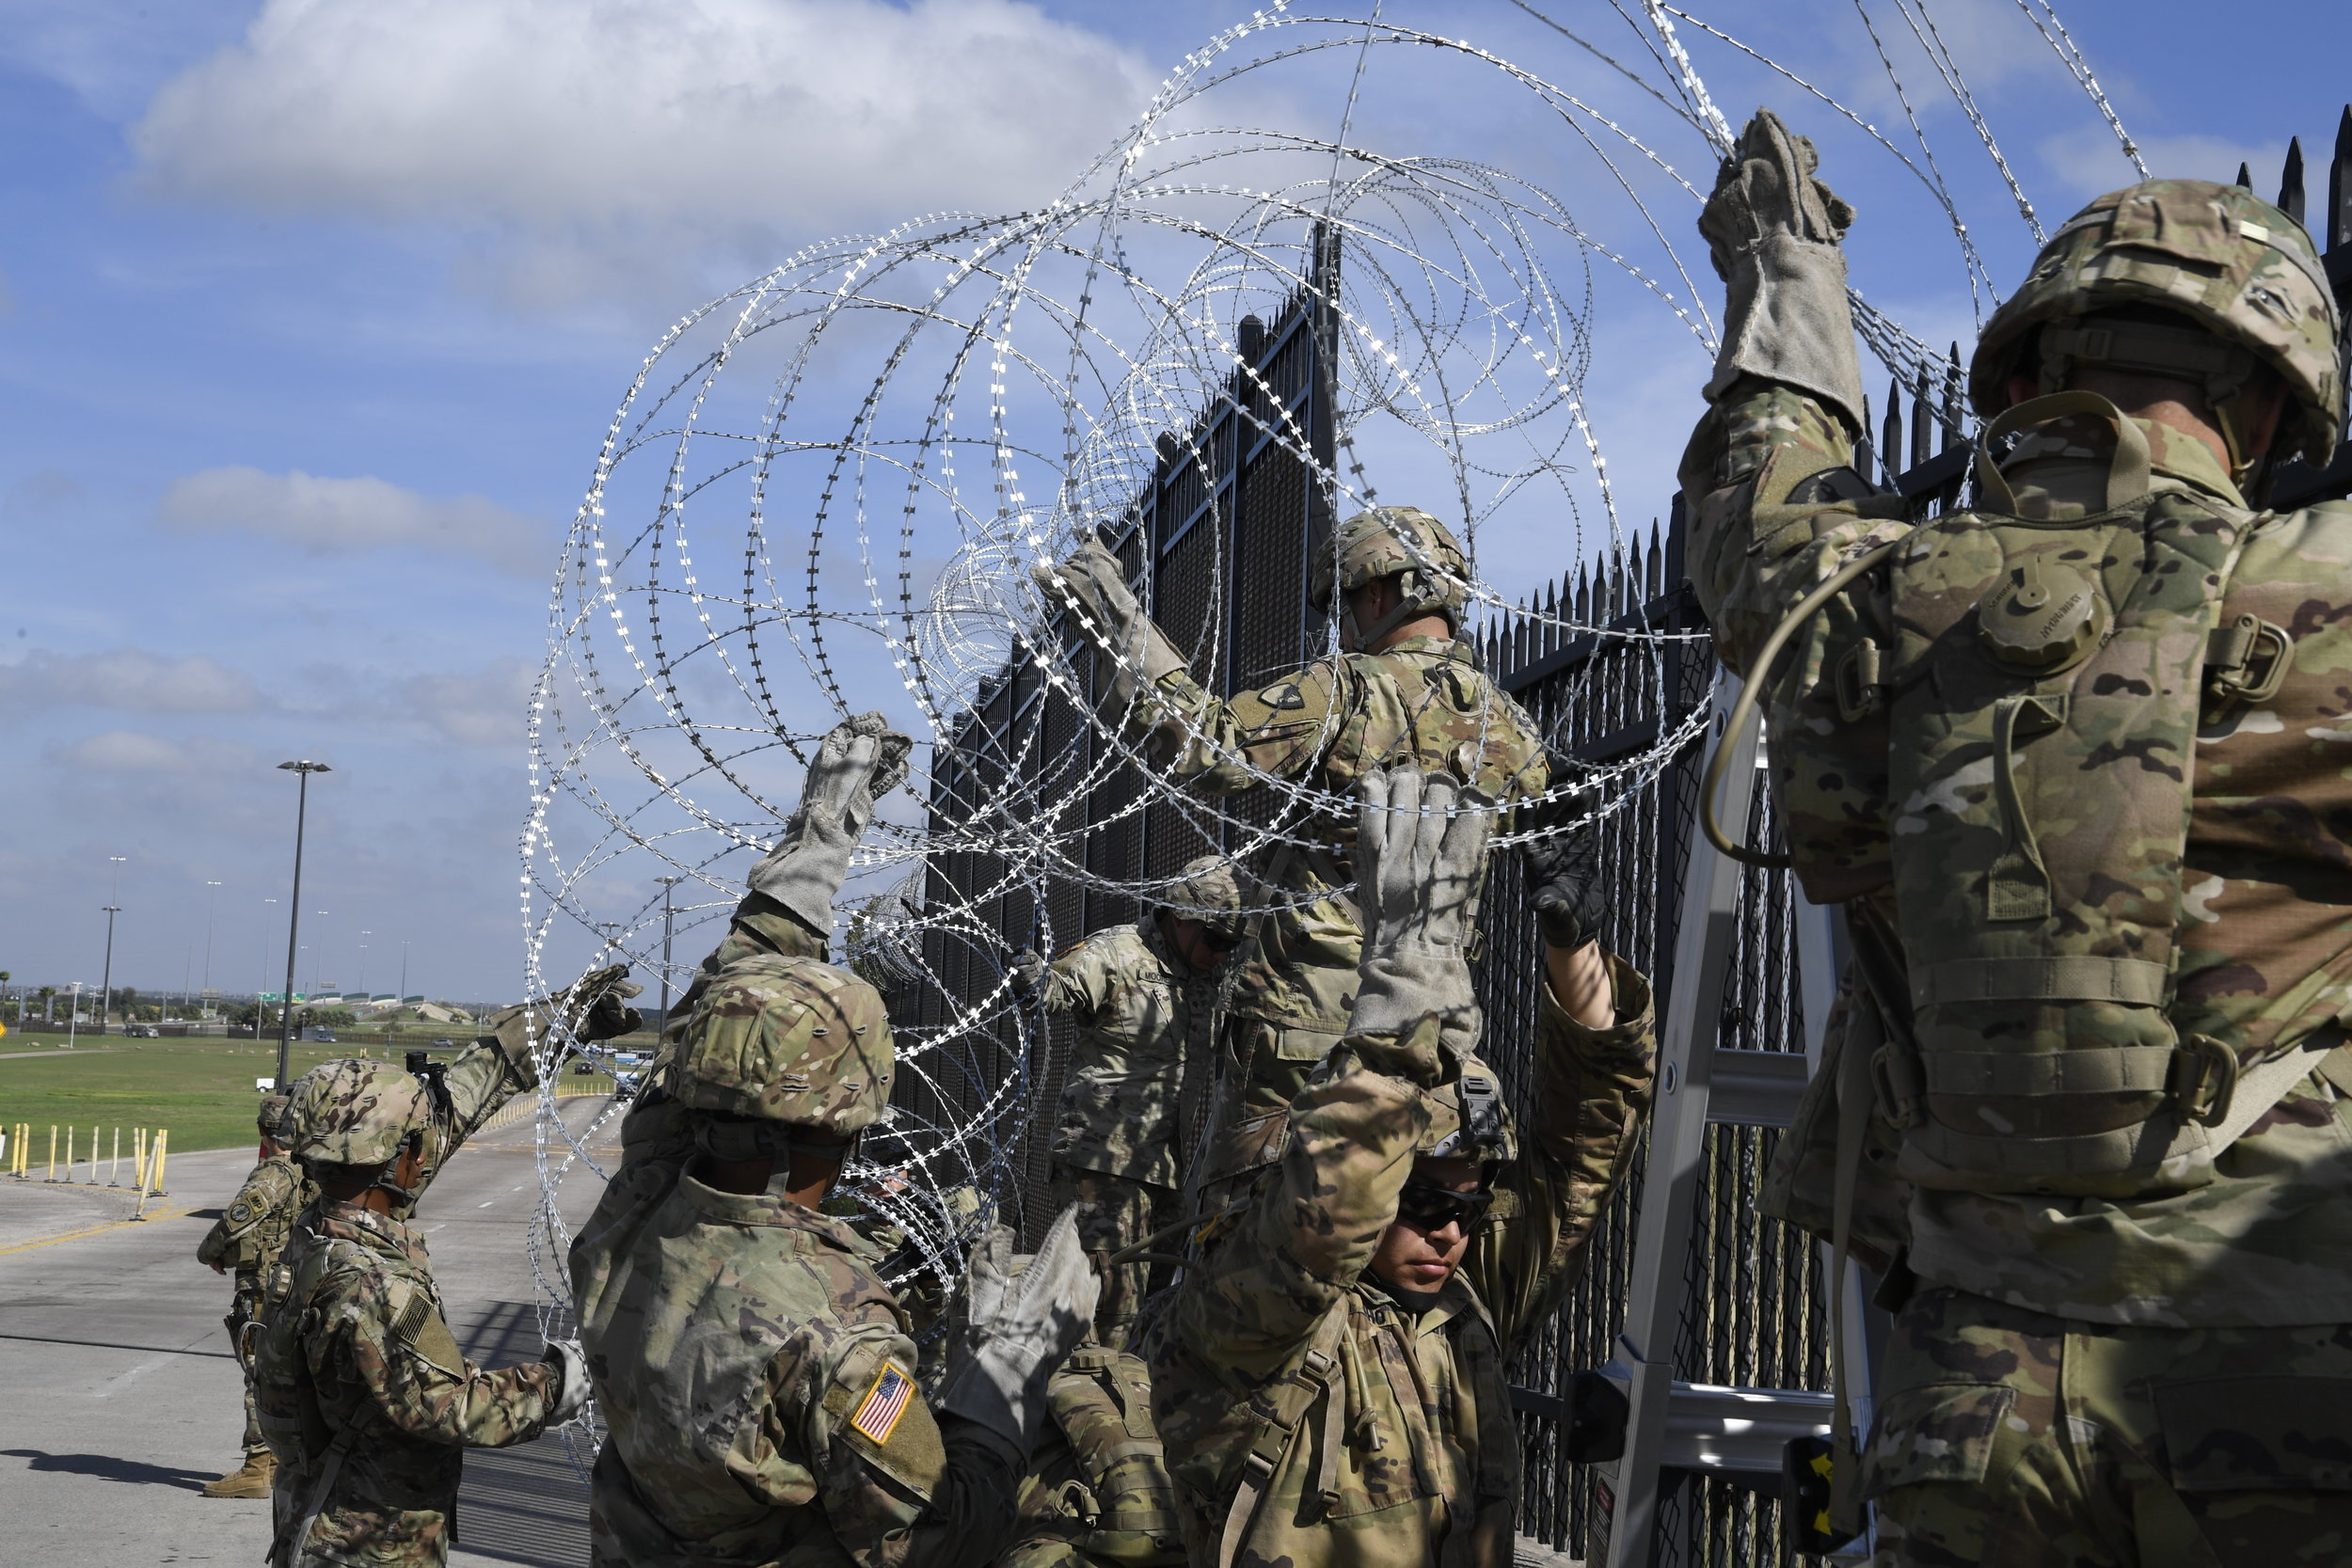 U.S. soldiers install concertina wire Nov. 5, 2018, on the Anzalduas International Bridge, Texas. (US Air Force photo by Airman First Class Daniel A. Hernandez)